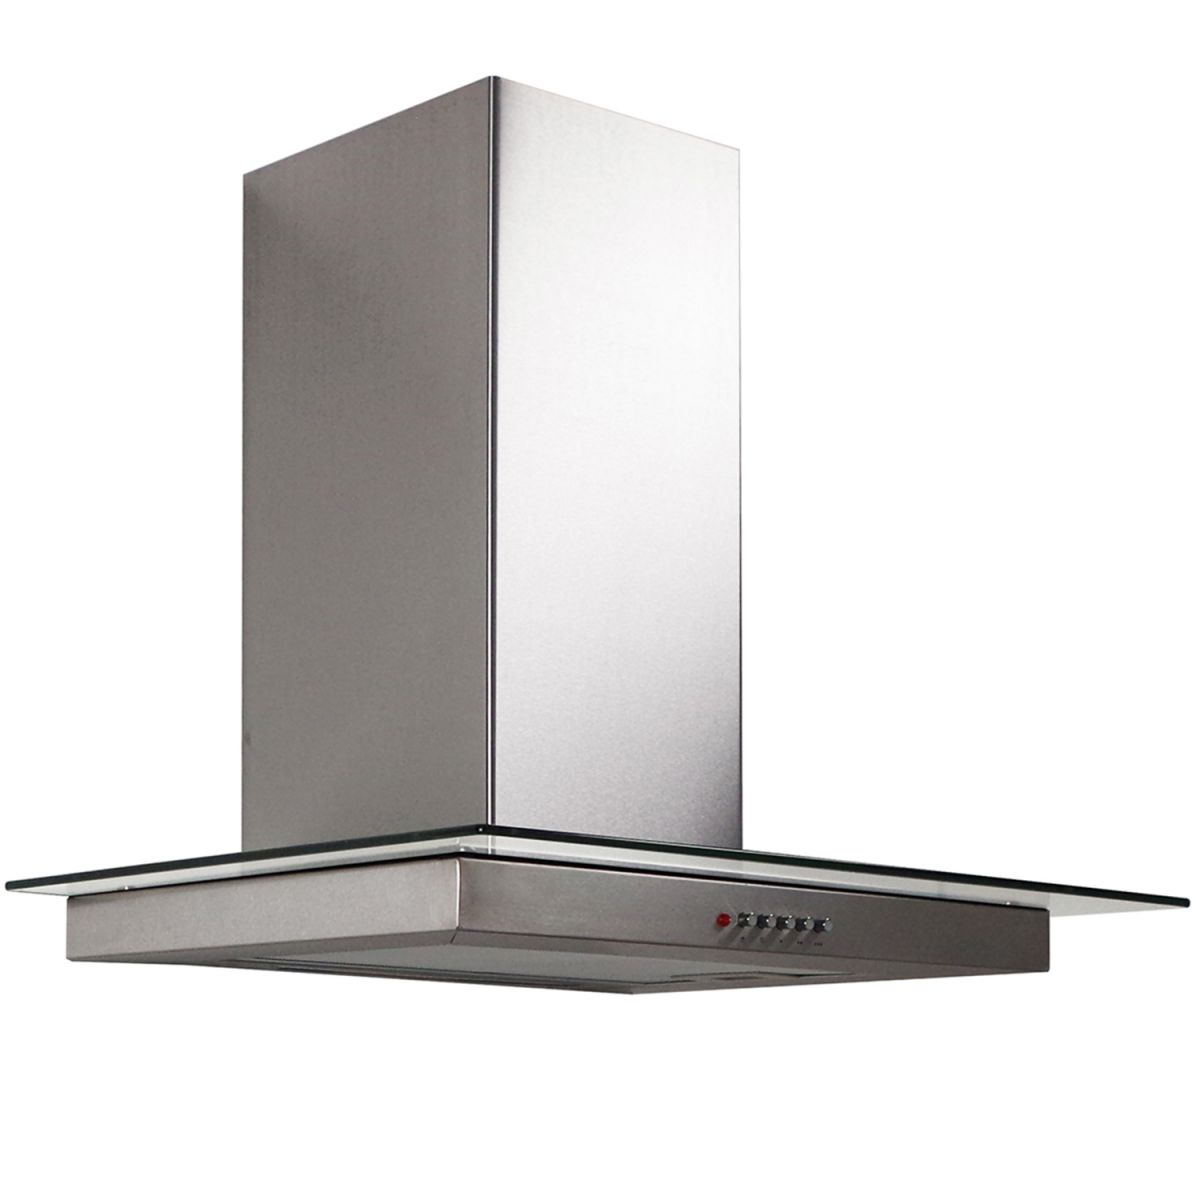 Cooker Hood With A Window ~ Myappliances ref cm flat glass cooker hood